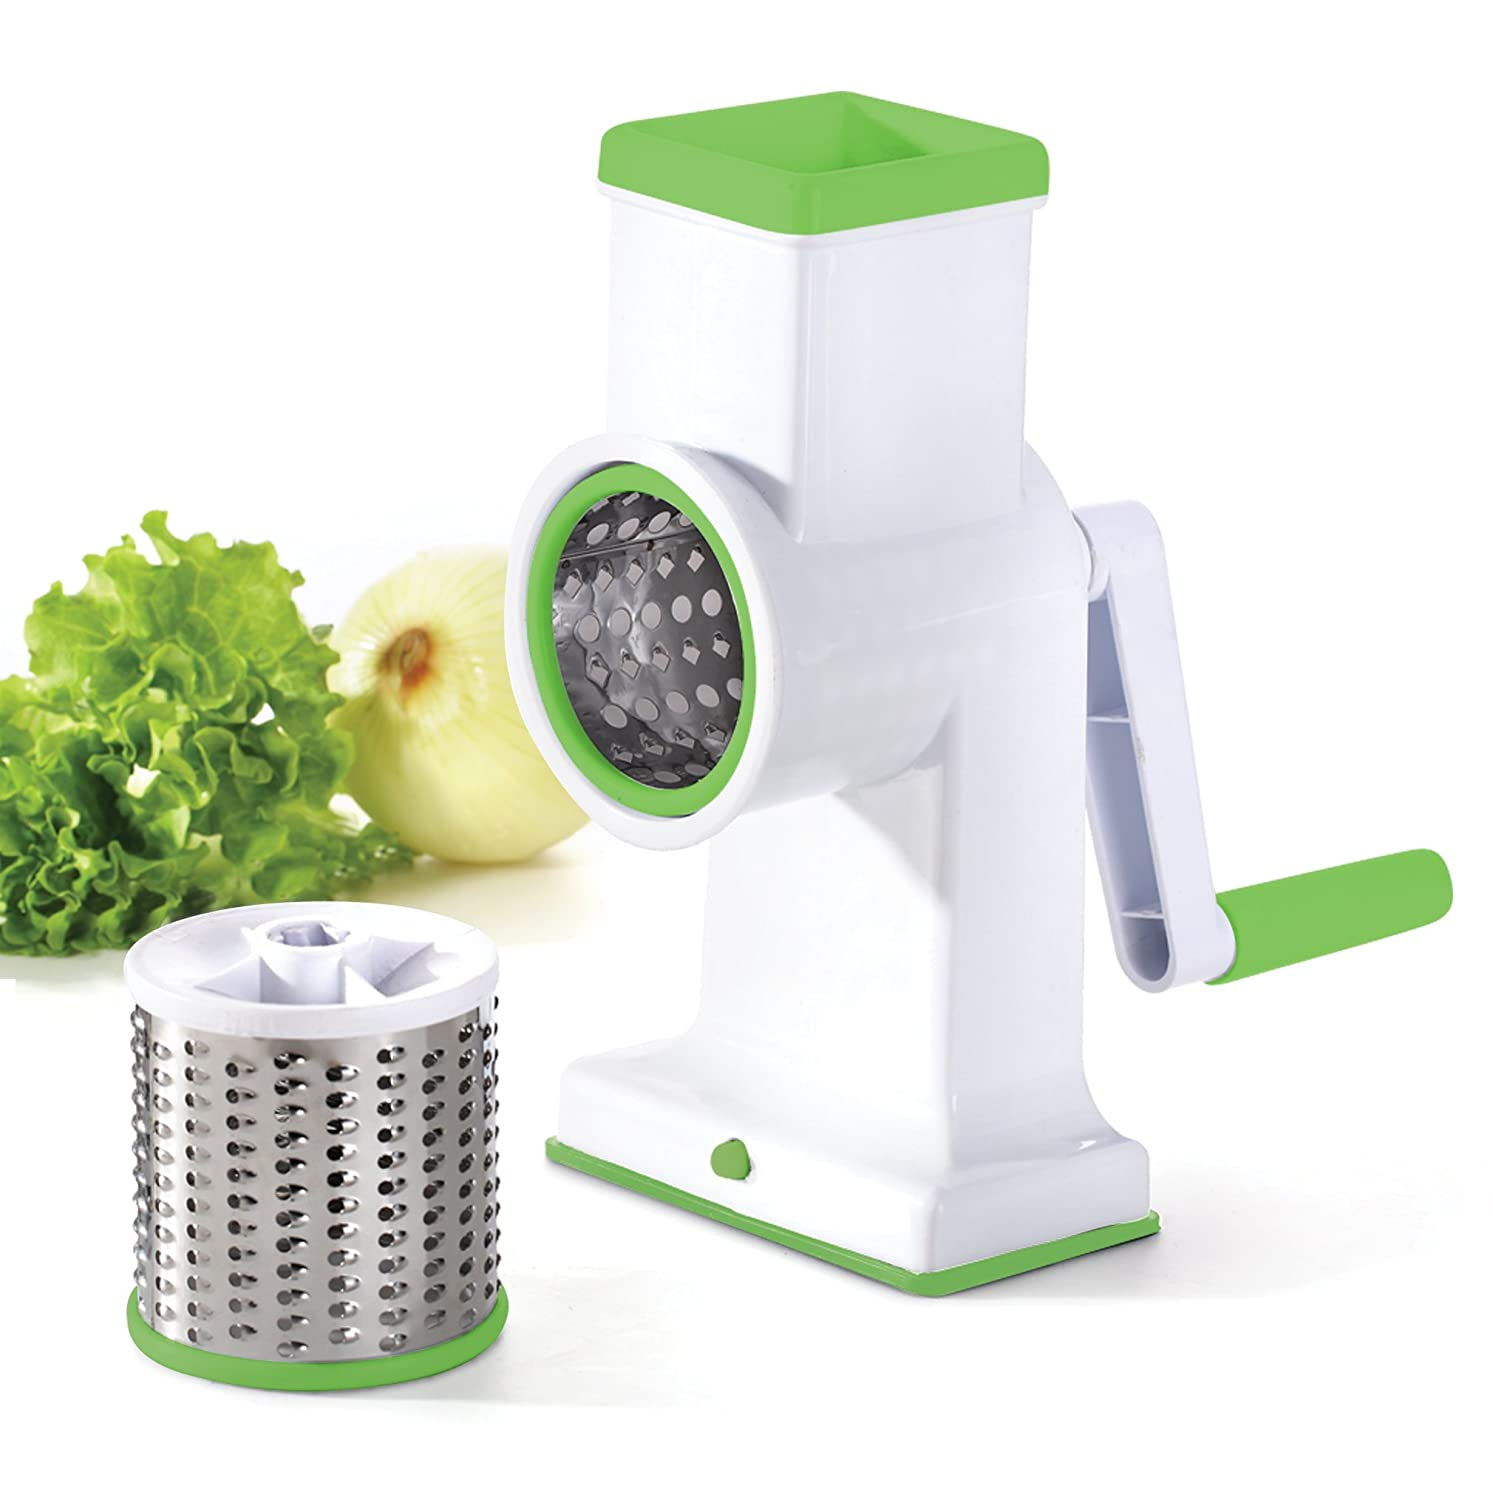 Kuuk Drum Grater for Cheese, Hash Browns, Coleslaw, Nuts, Salads, Chocolate and more NA